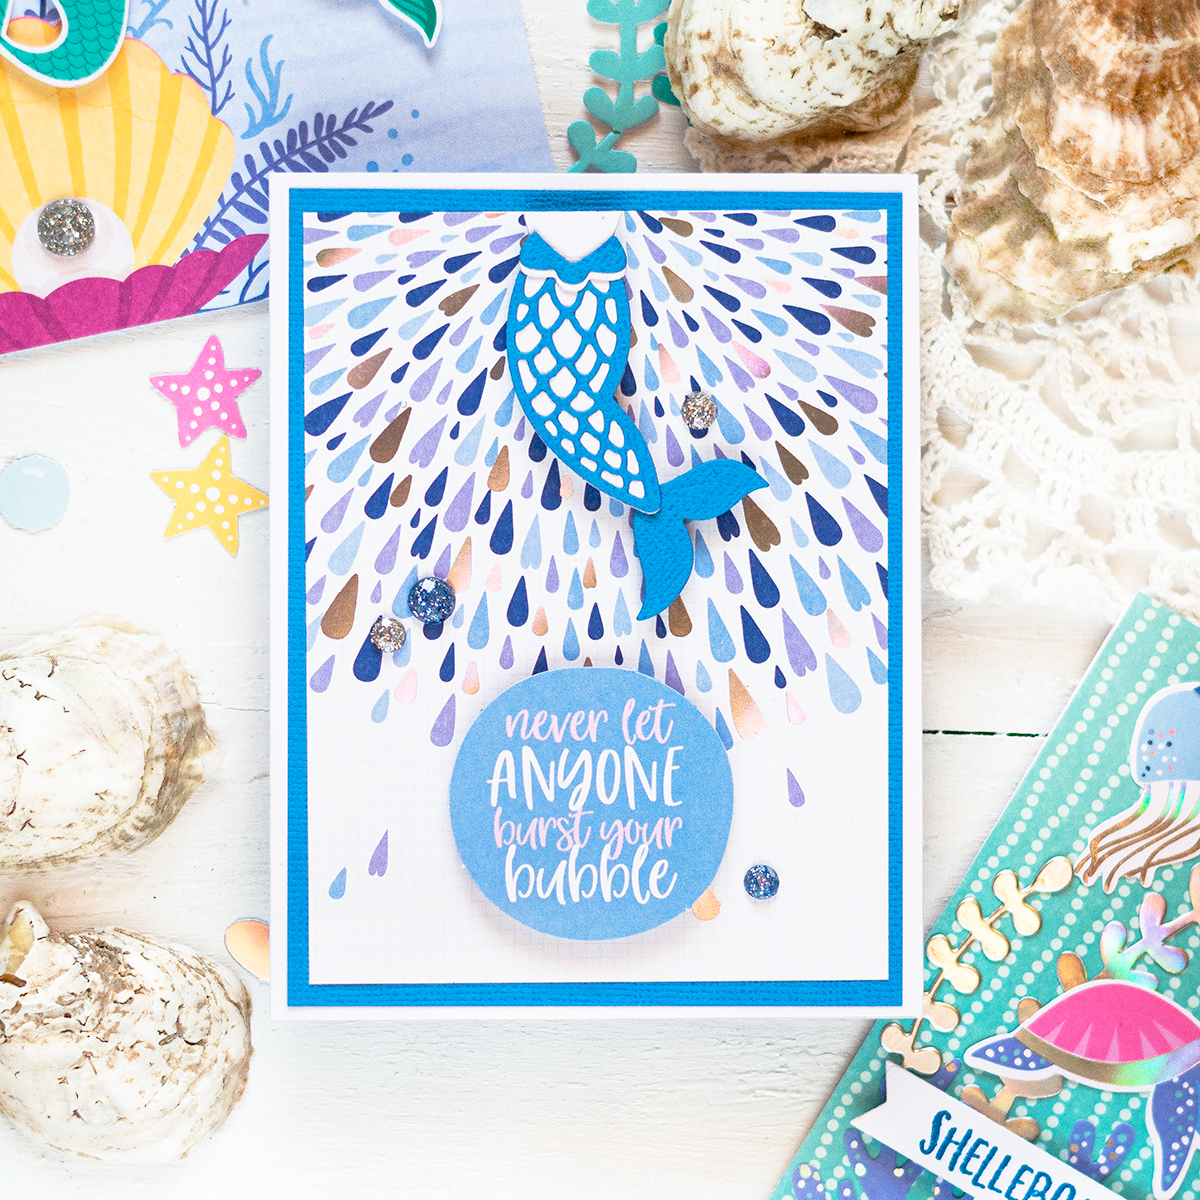 Spellbinders July Card Kit. Card by Svitlana Shayevich